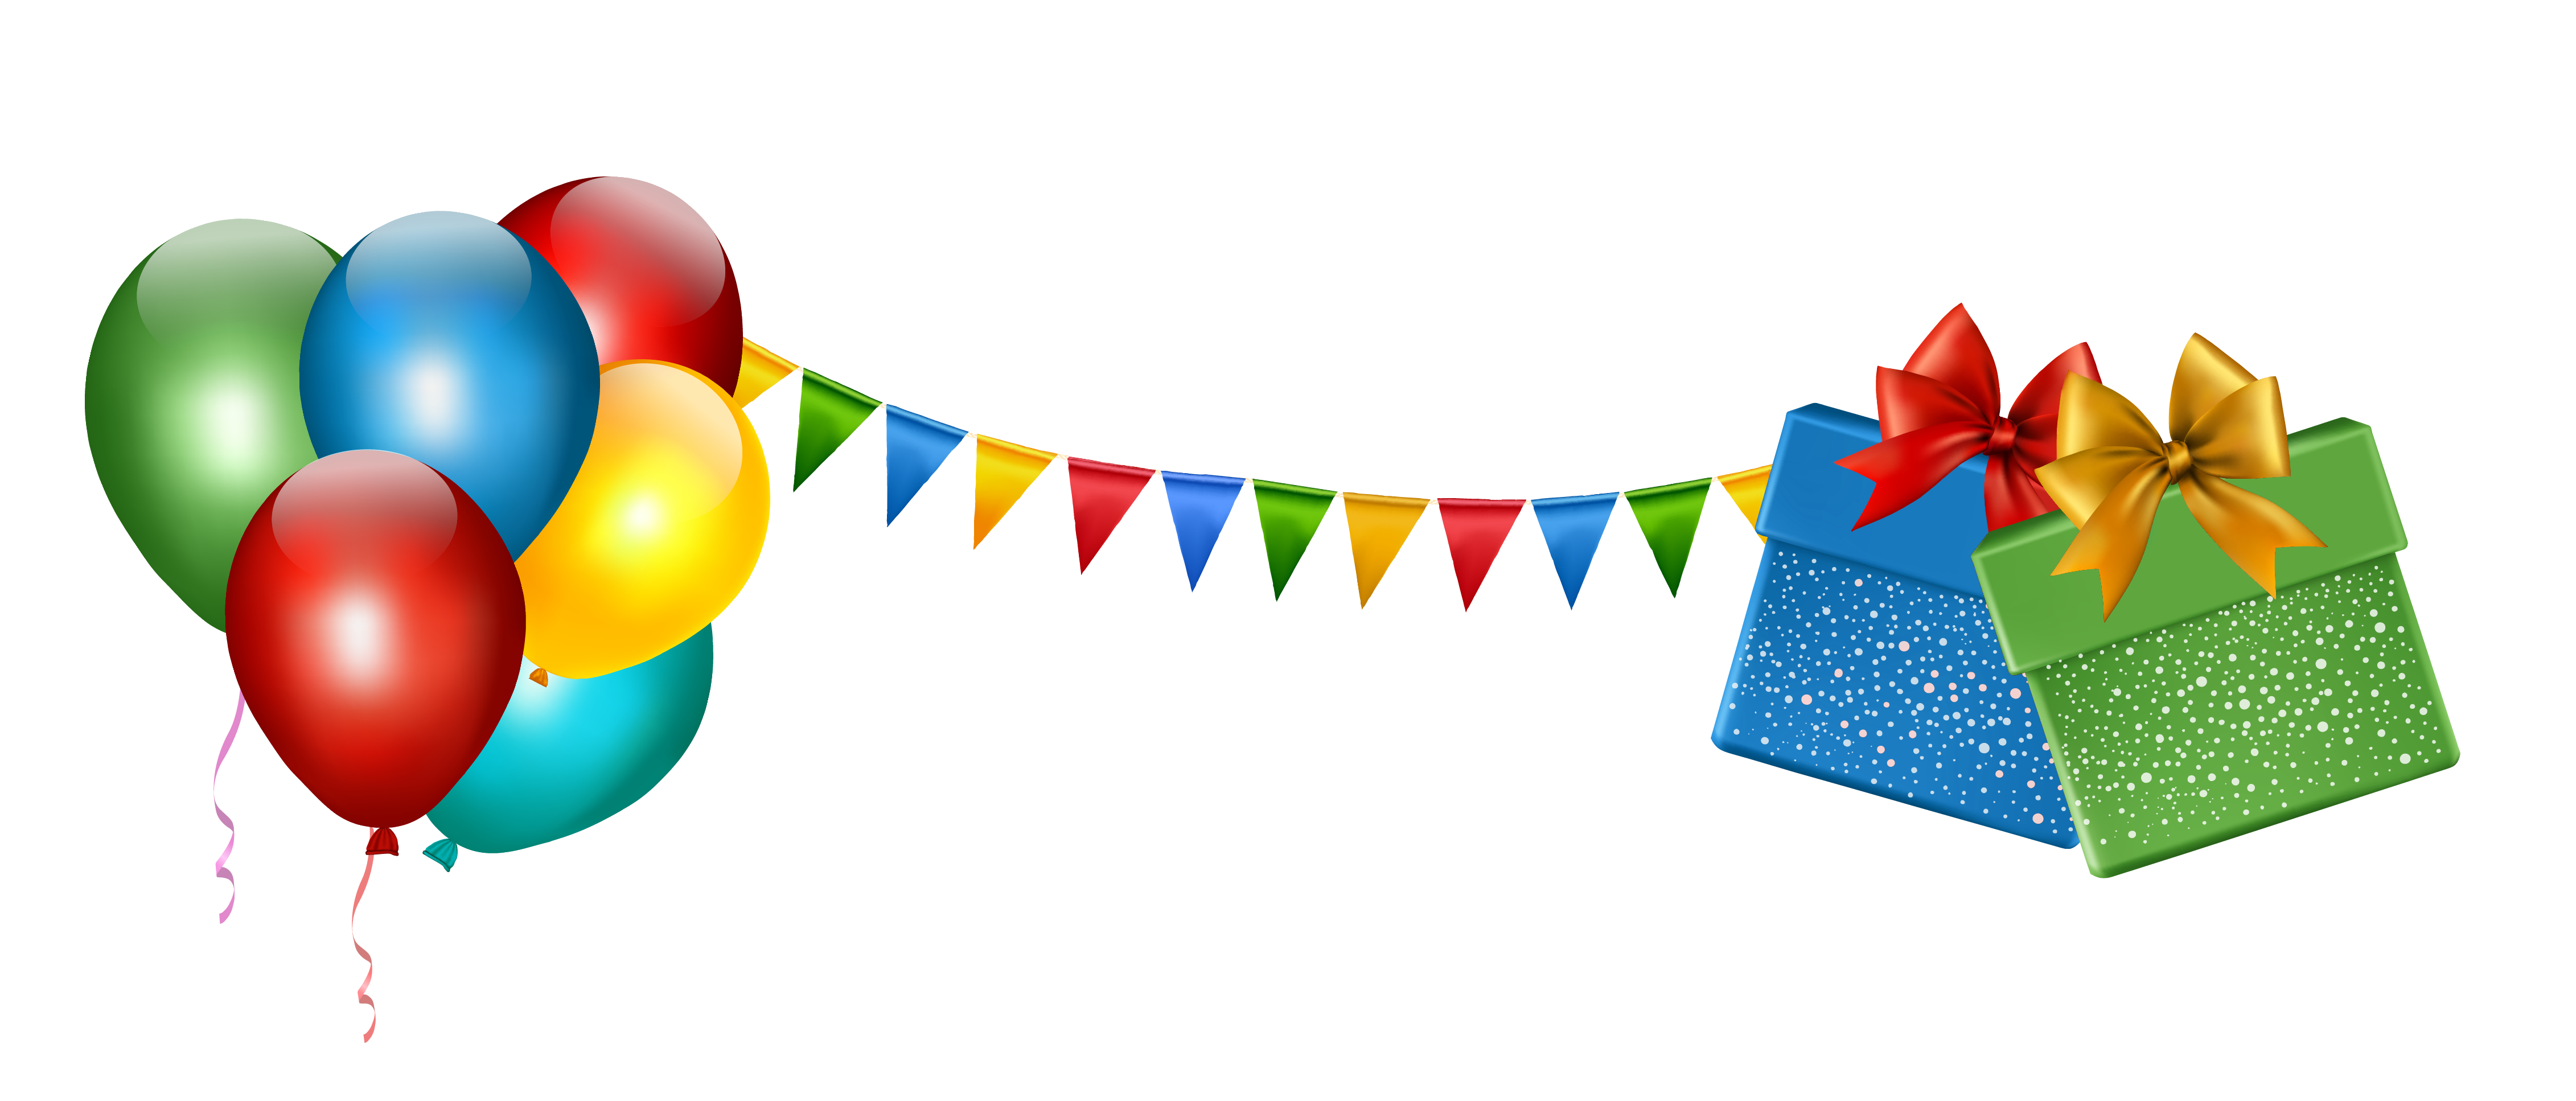 Party clipart party banner. Free balloon cliparts download